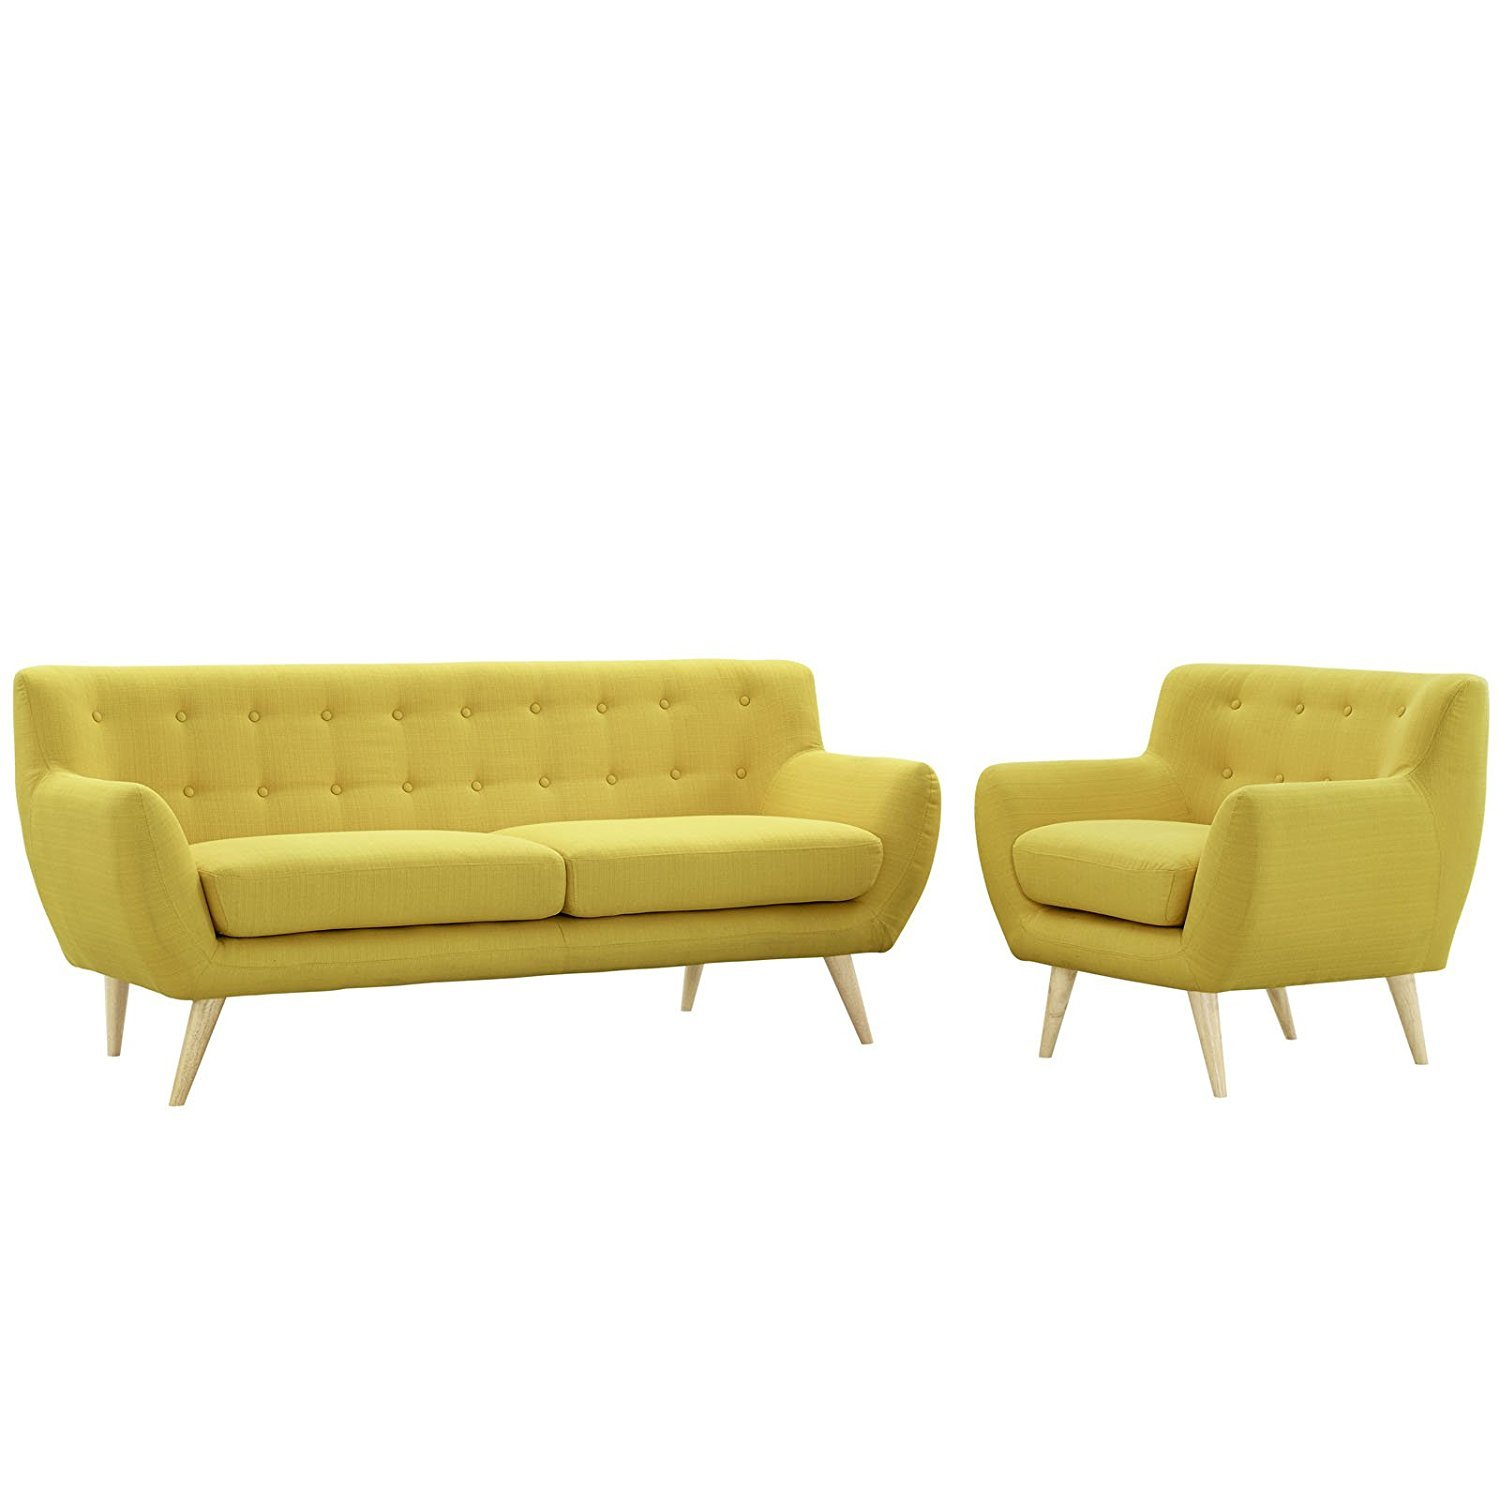 Modway remark mid century modern sofa and armchair home for Mid century modern living room furniture arrangement